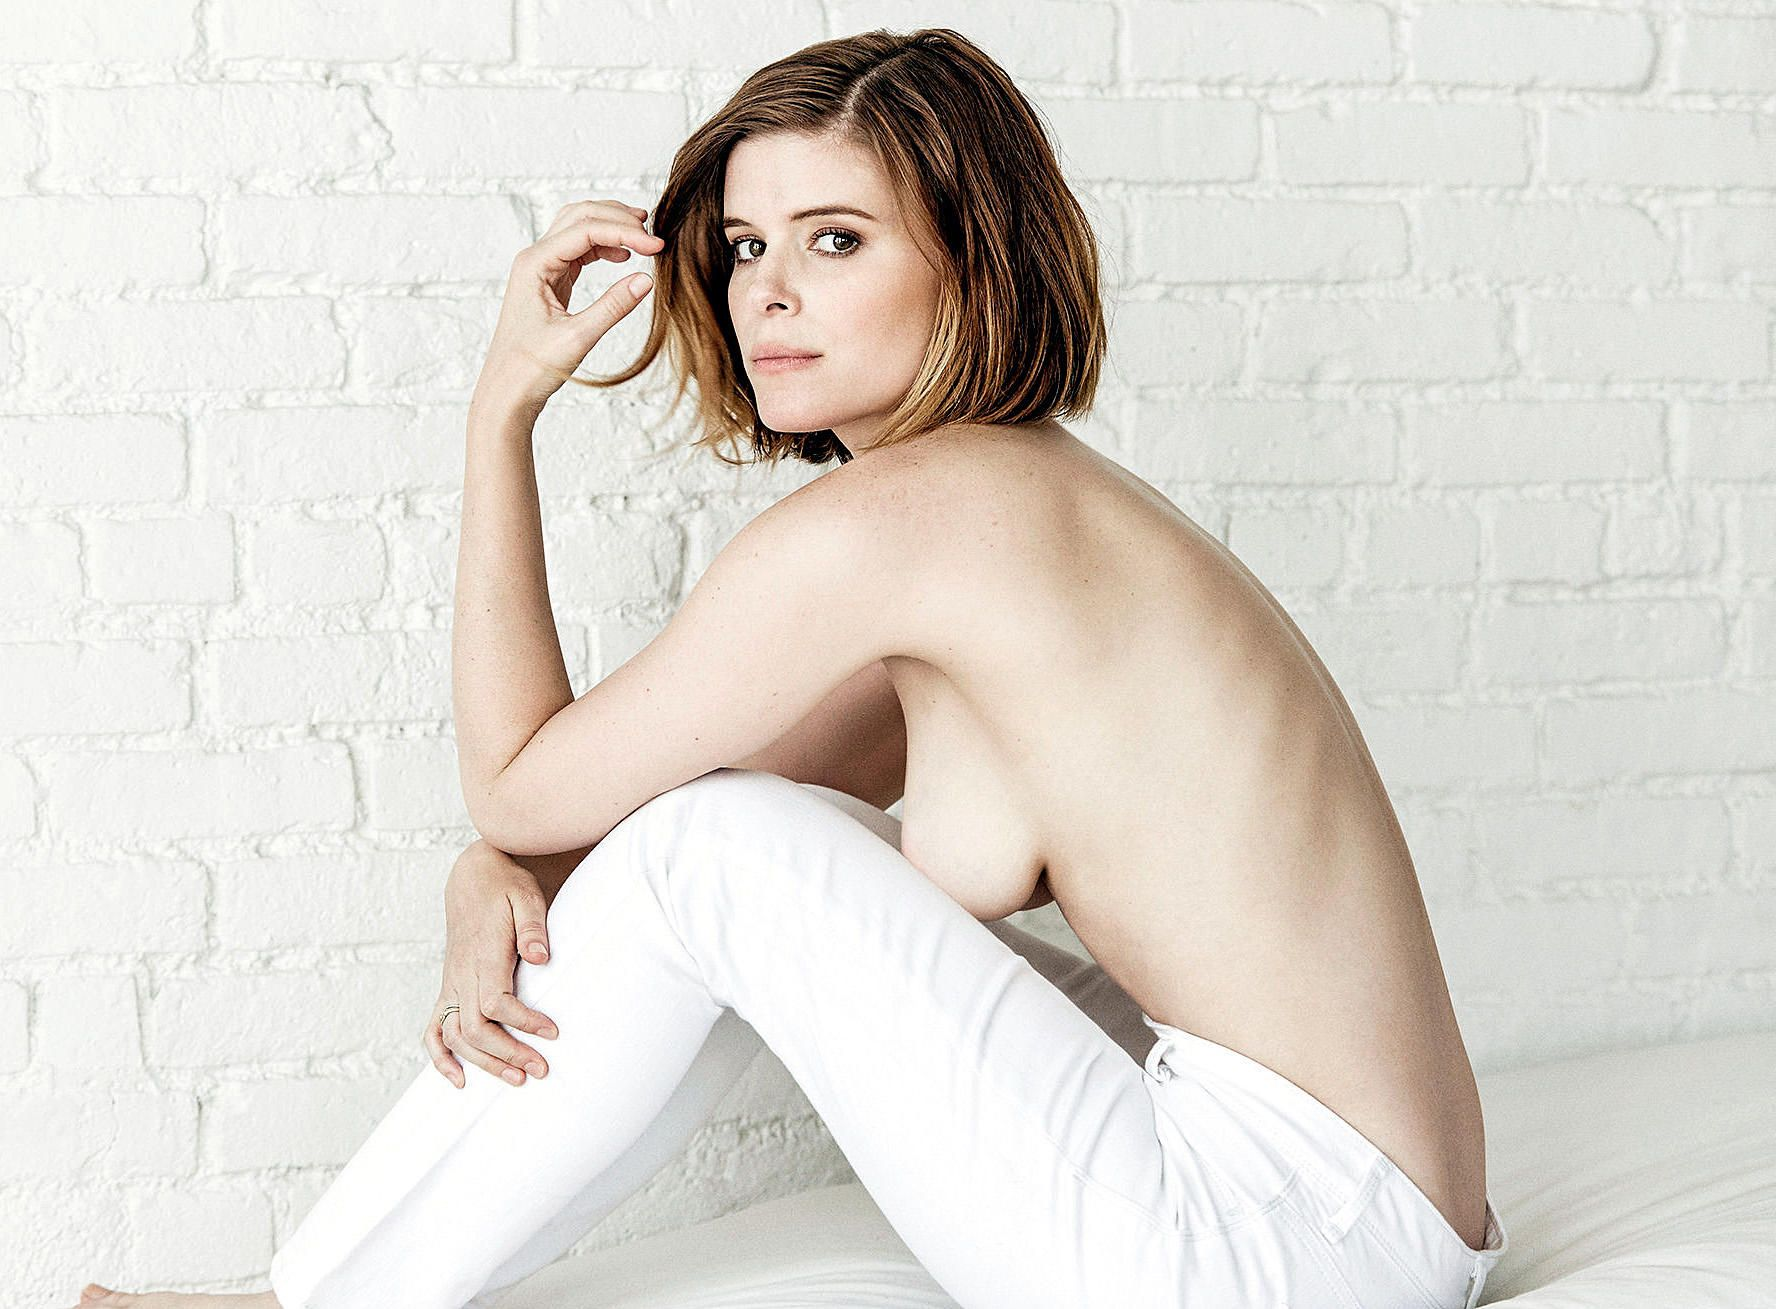 Fappening Kate Mara nudes (61 foto and video), Tits, Bikini, Boobs, butt 2017